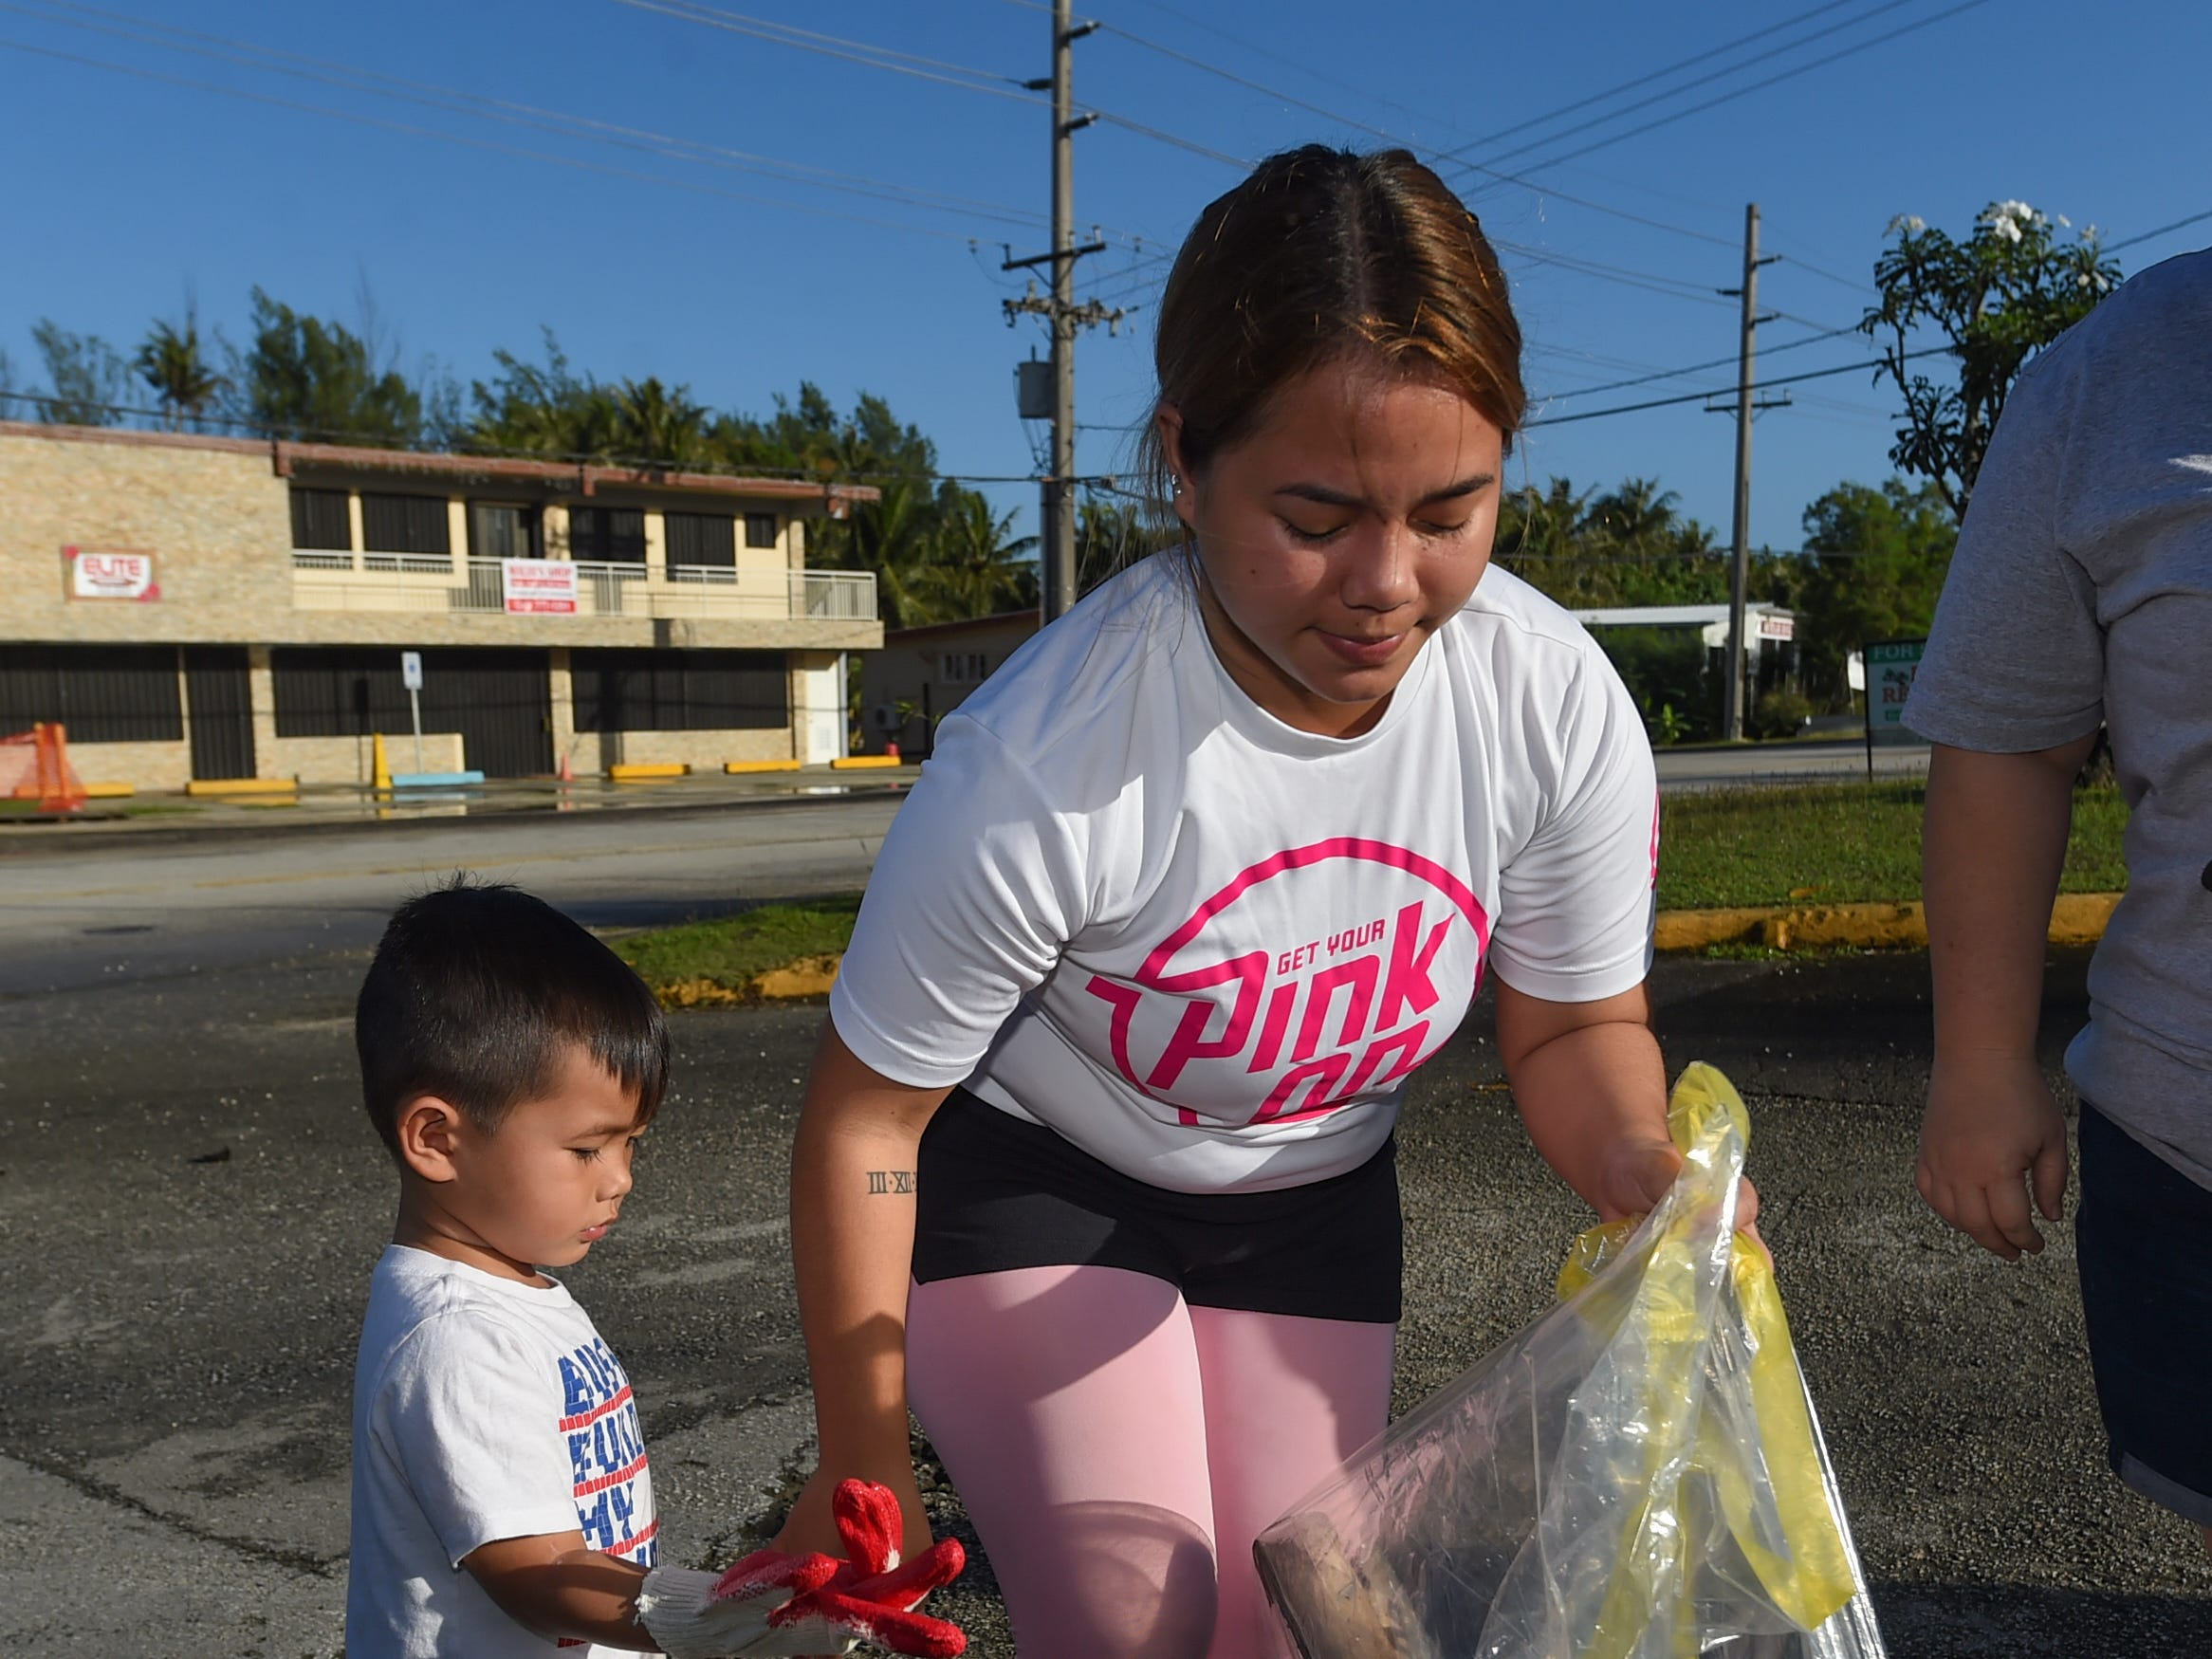 Four-year-old Connor Cundiff helps his mom, KalinaJay Cundiff, during the annual Na' Bonita Hagat village cleanup in Agat on Feb. 9, 2019.